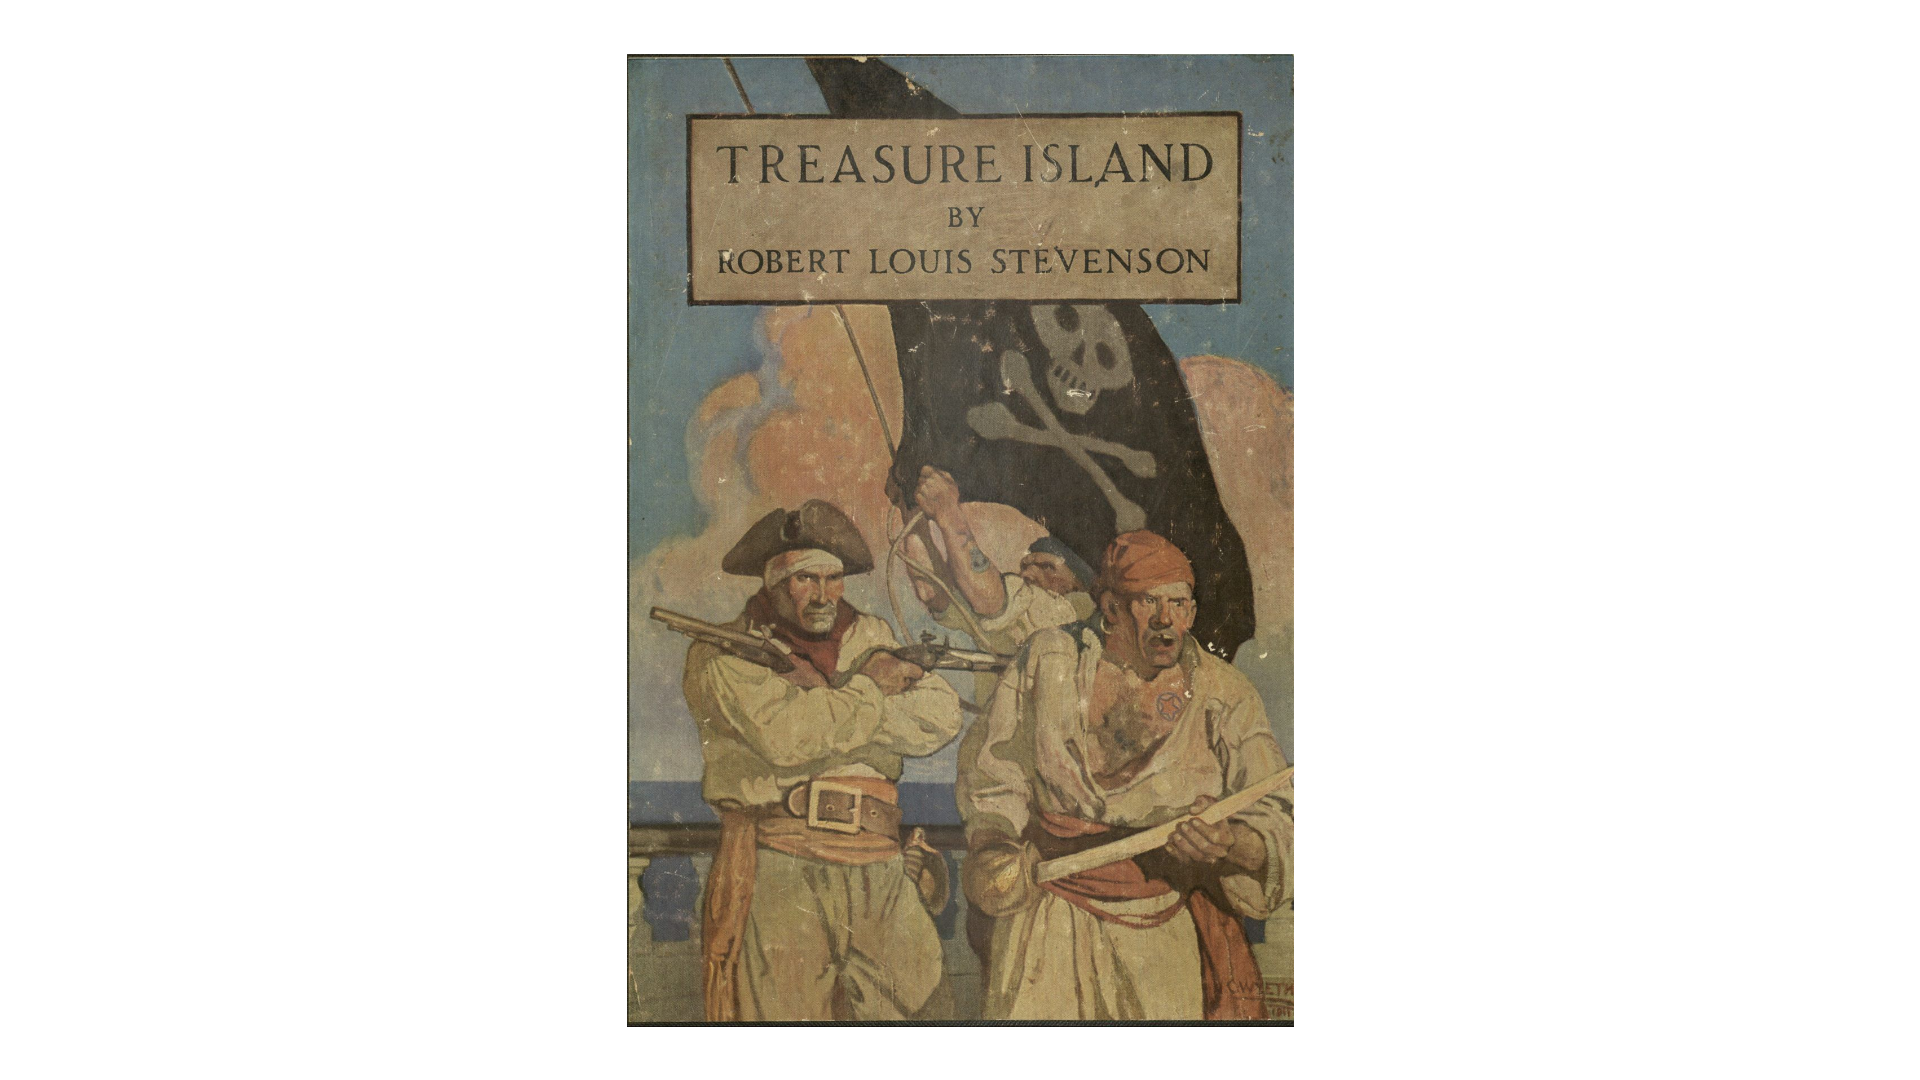 Treasure Island Cover 1911 Rare PR5486.A1  The Mariners' Museum and Park Collection